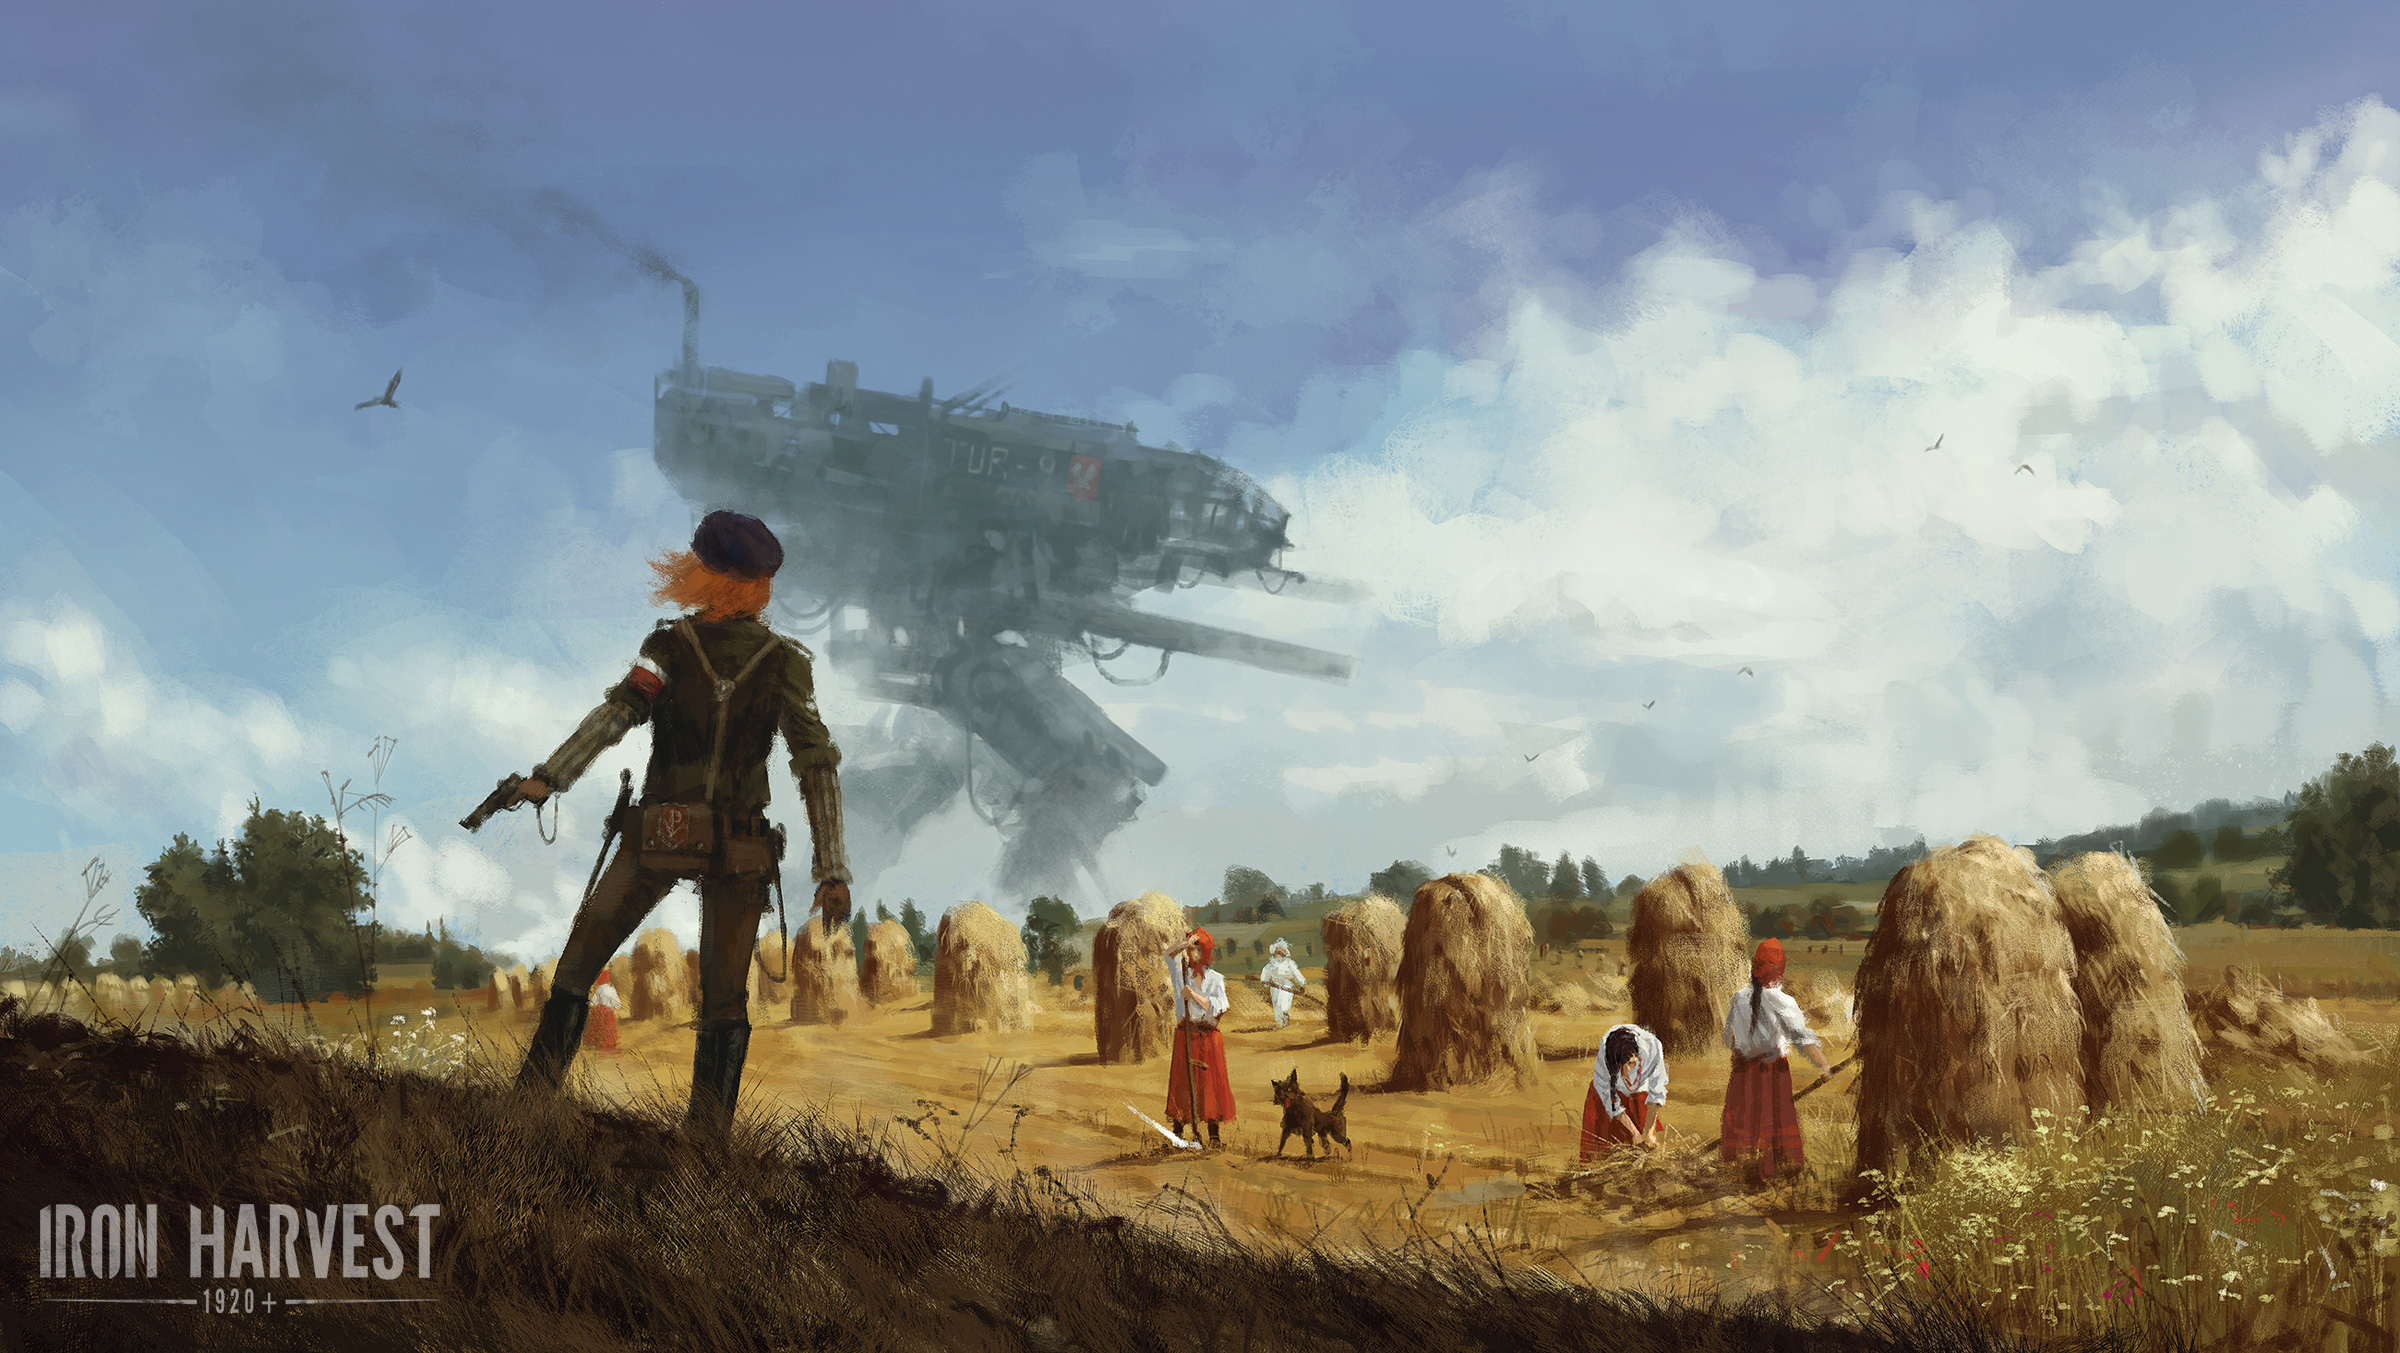 iron_harvest_art01.jpg